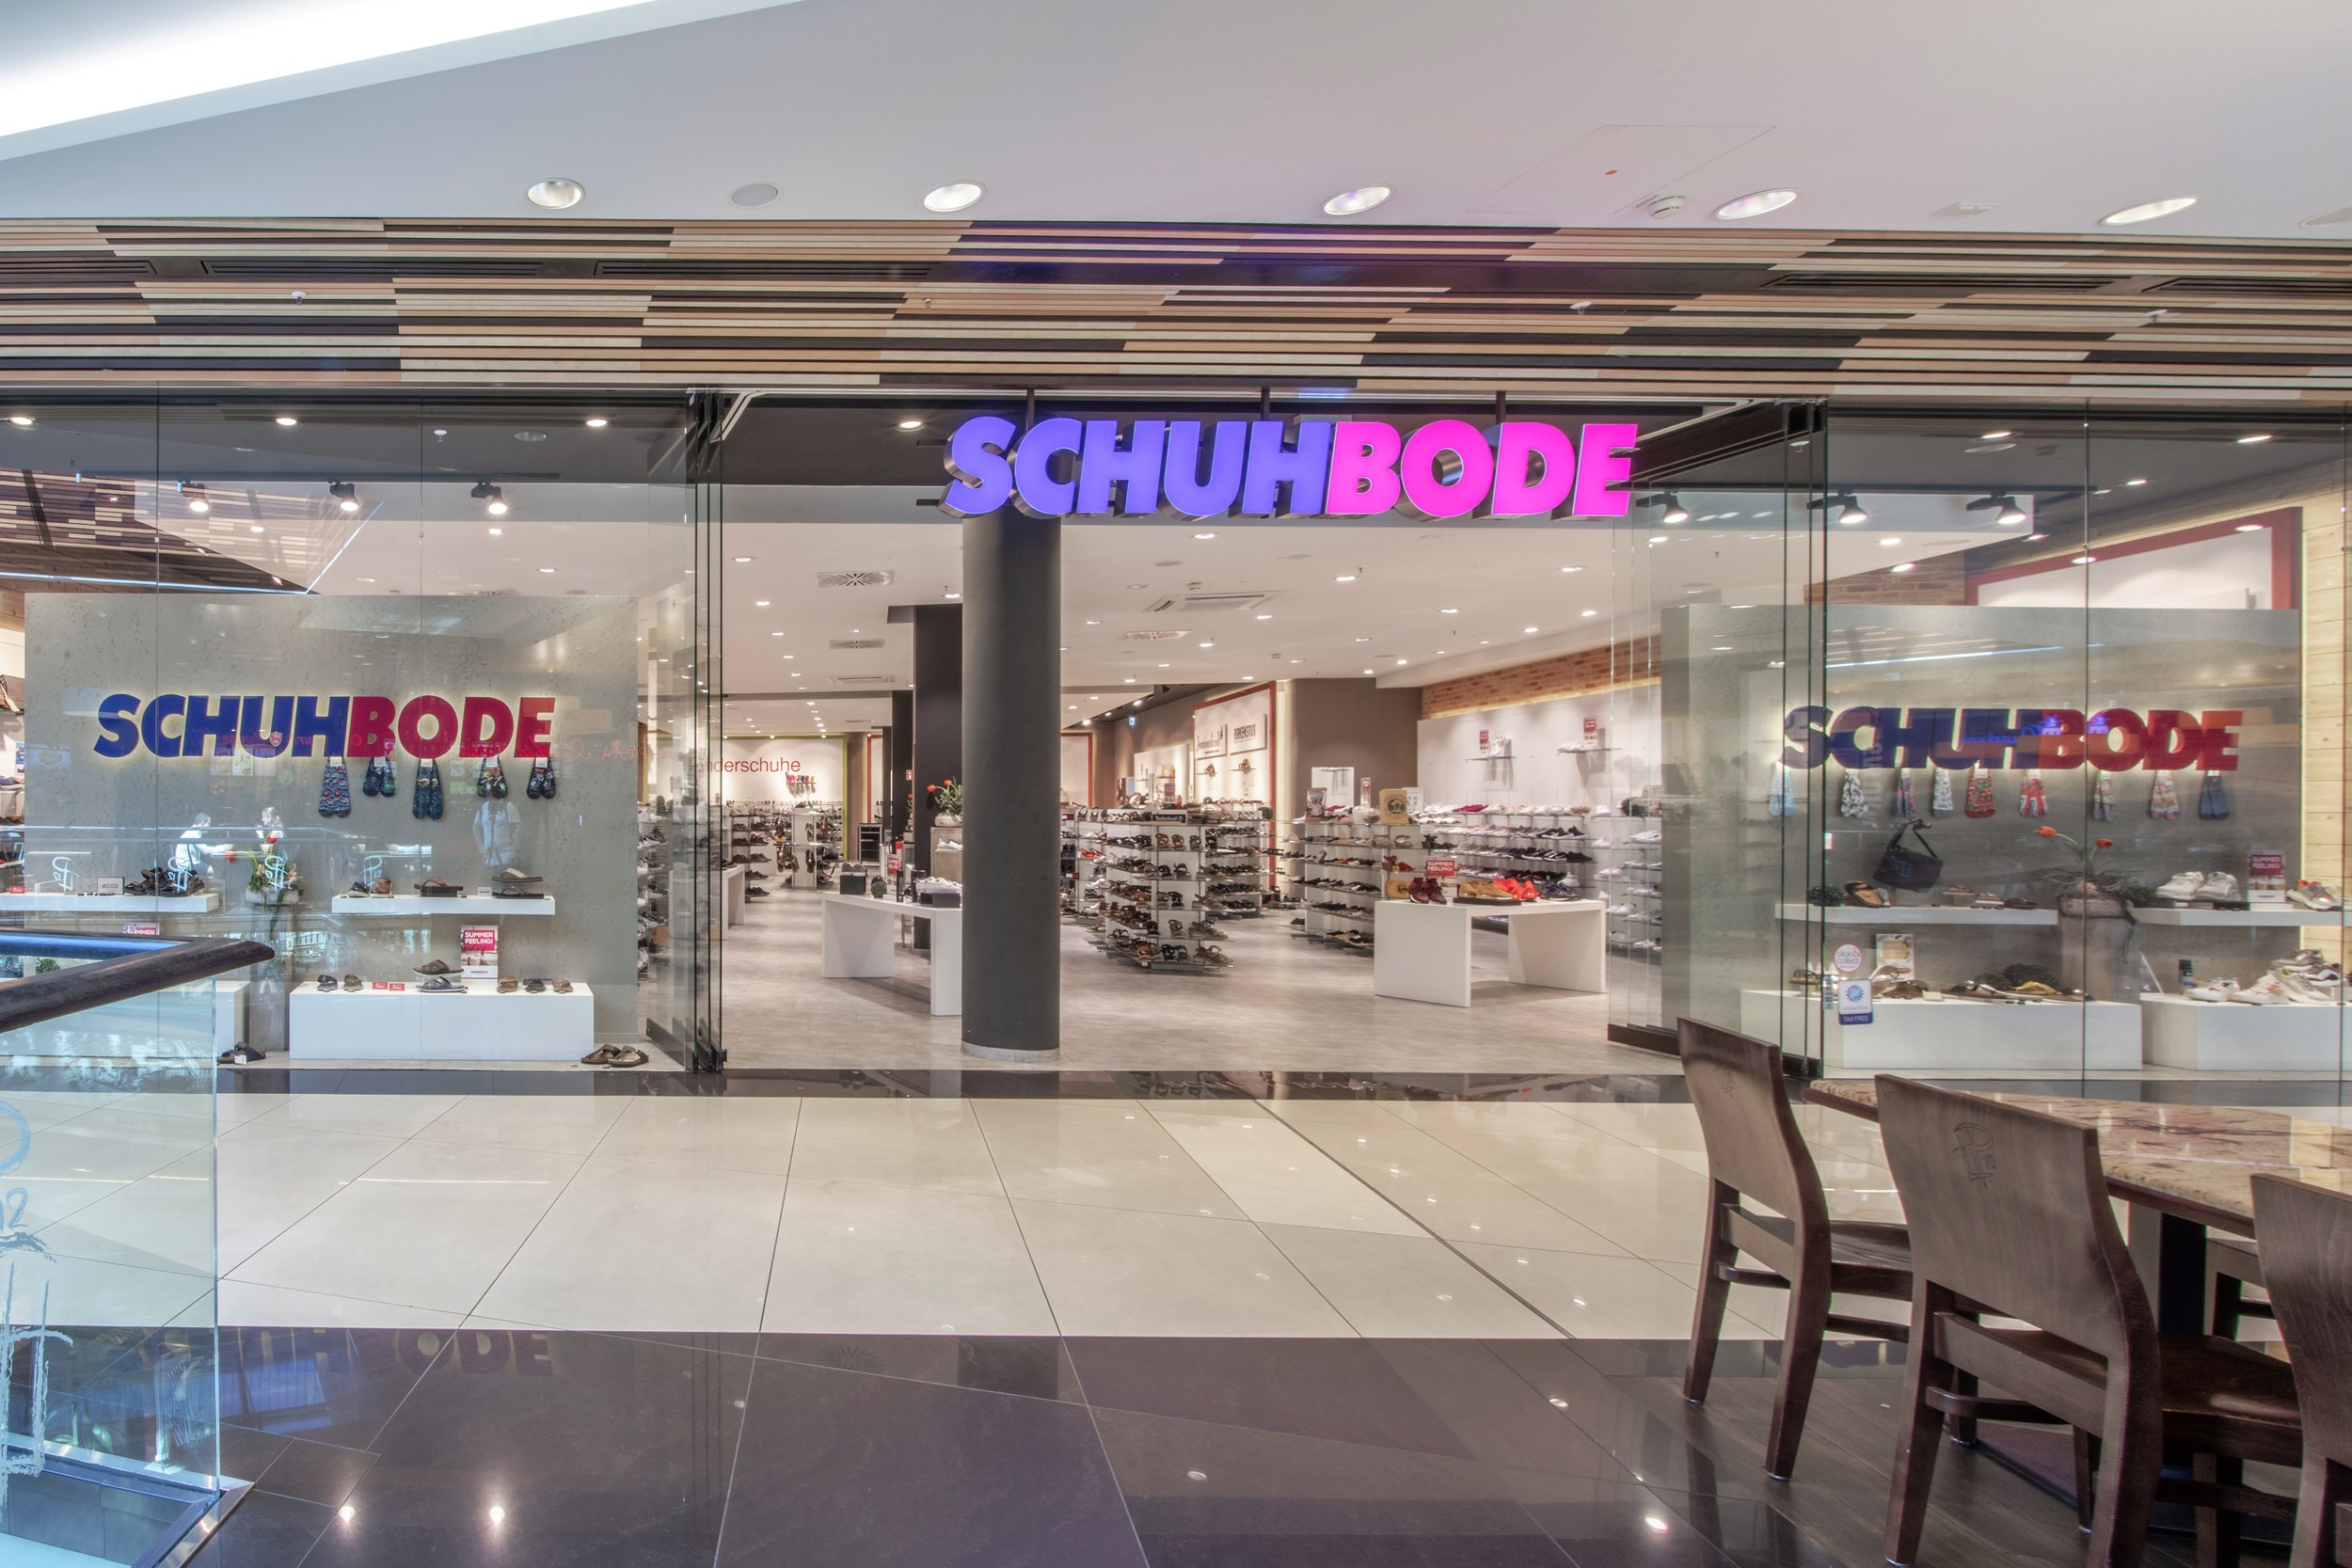 Schuh Bode at the Mall of Berlin